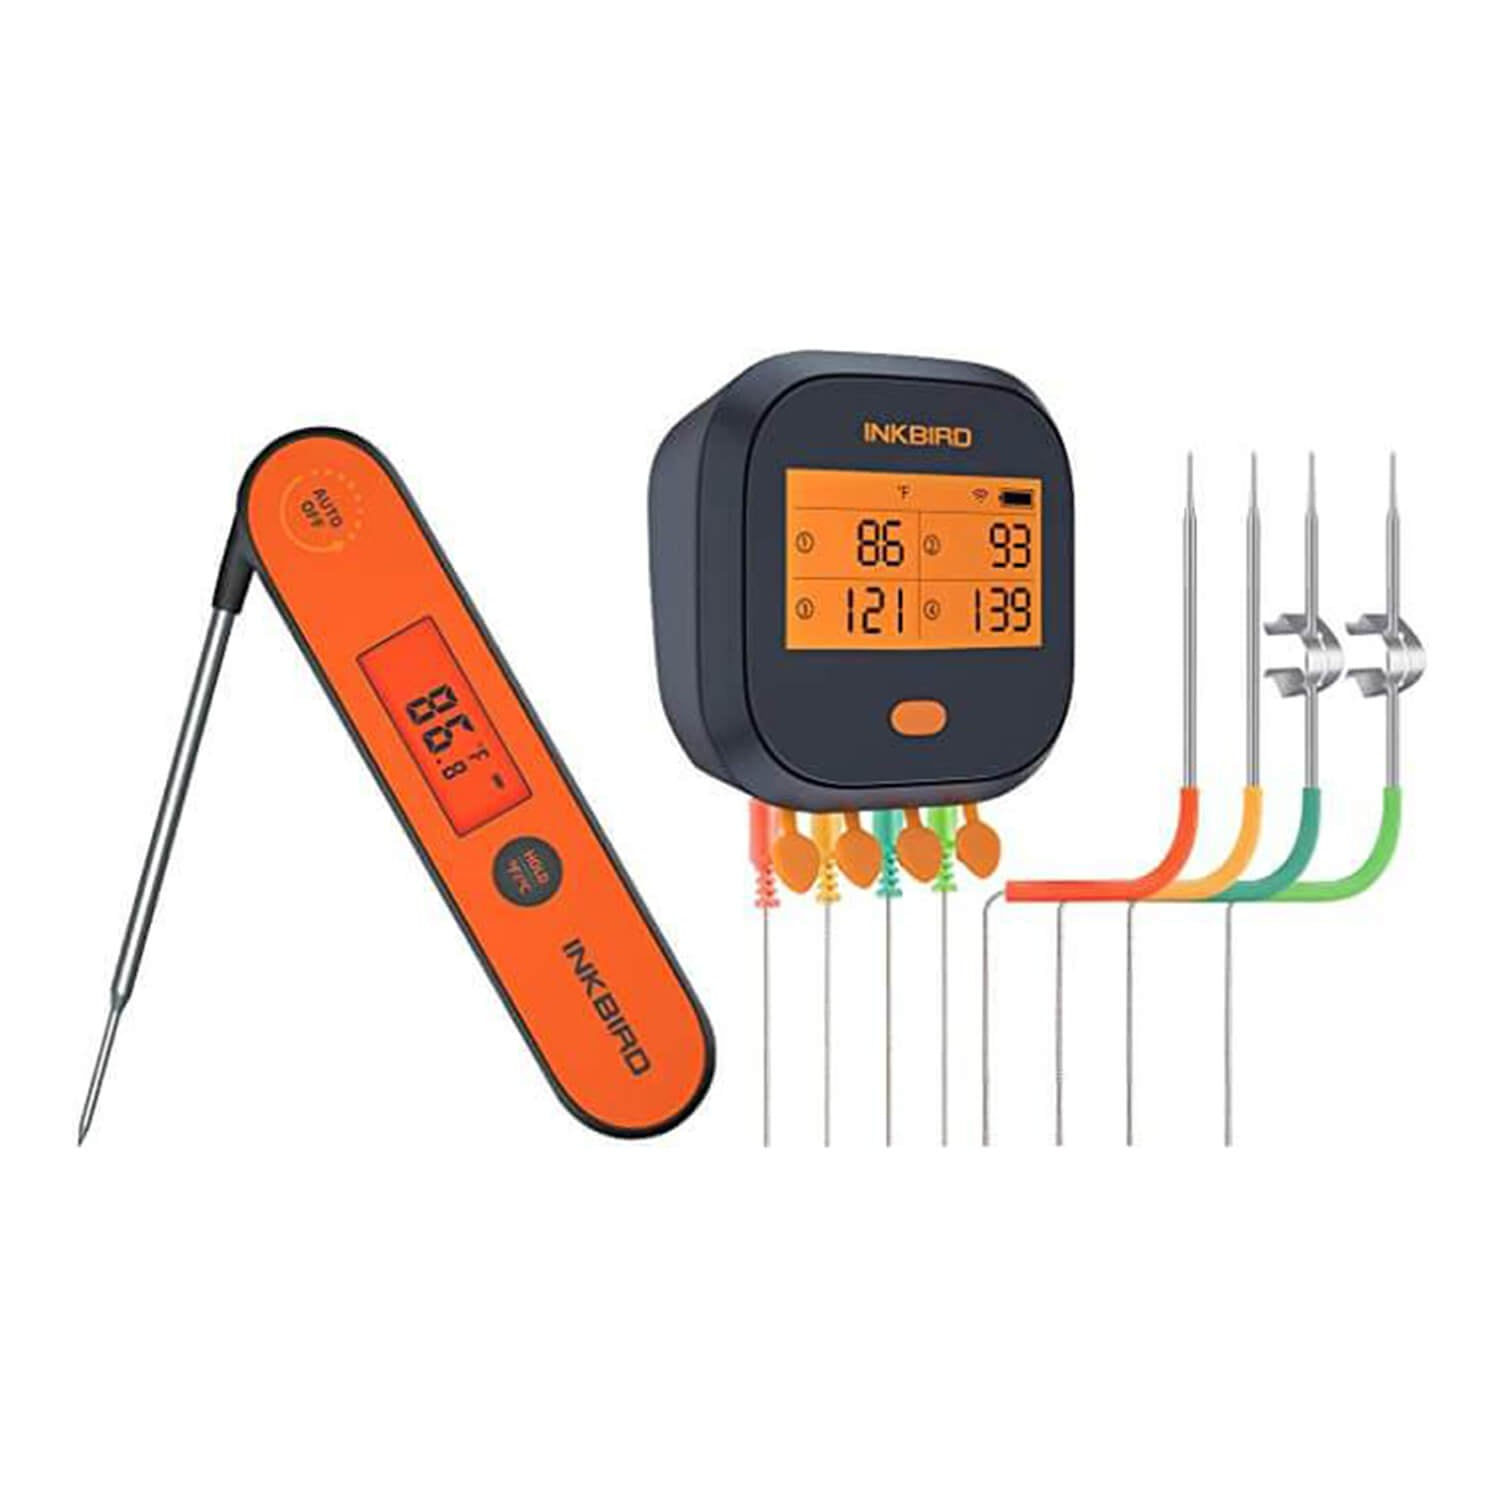 Inkbird WiFi Grill Thermometer IBBQ-4T with 4 Meat Probes and Waterproof Instant Read Thermometer IHT-1P